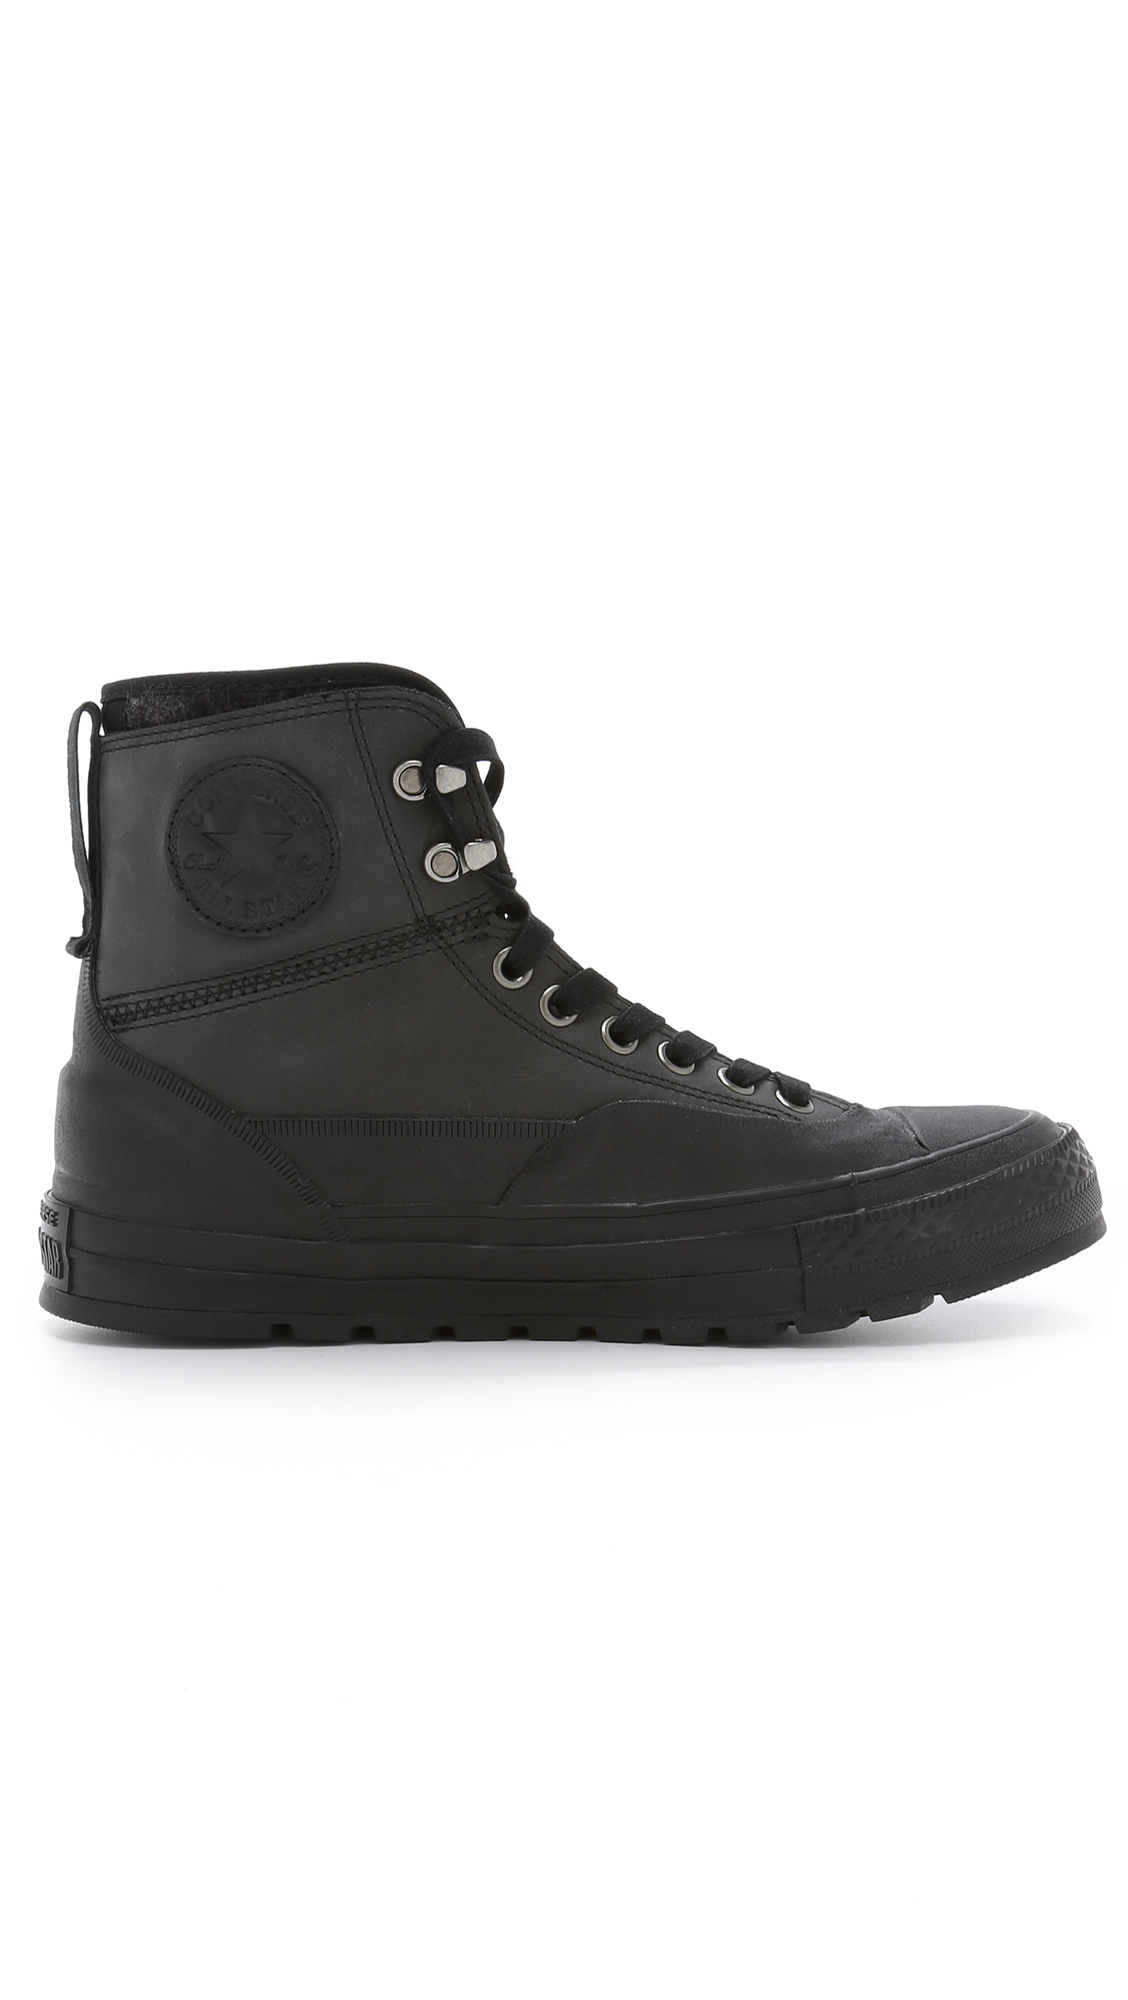 b147daf436bb46 Lyst - Converse Chuck Taylor All Star Tekoa Boots in Black for Men